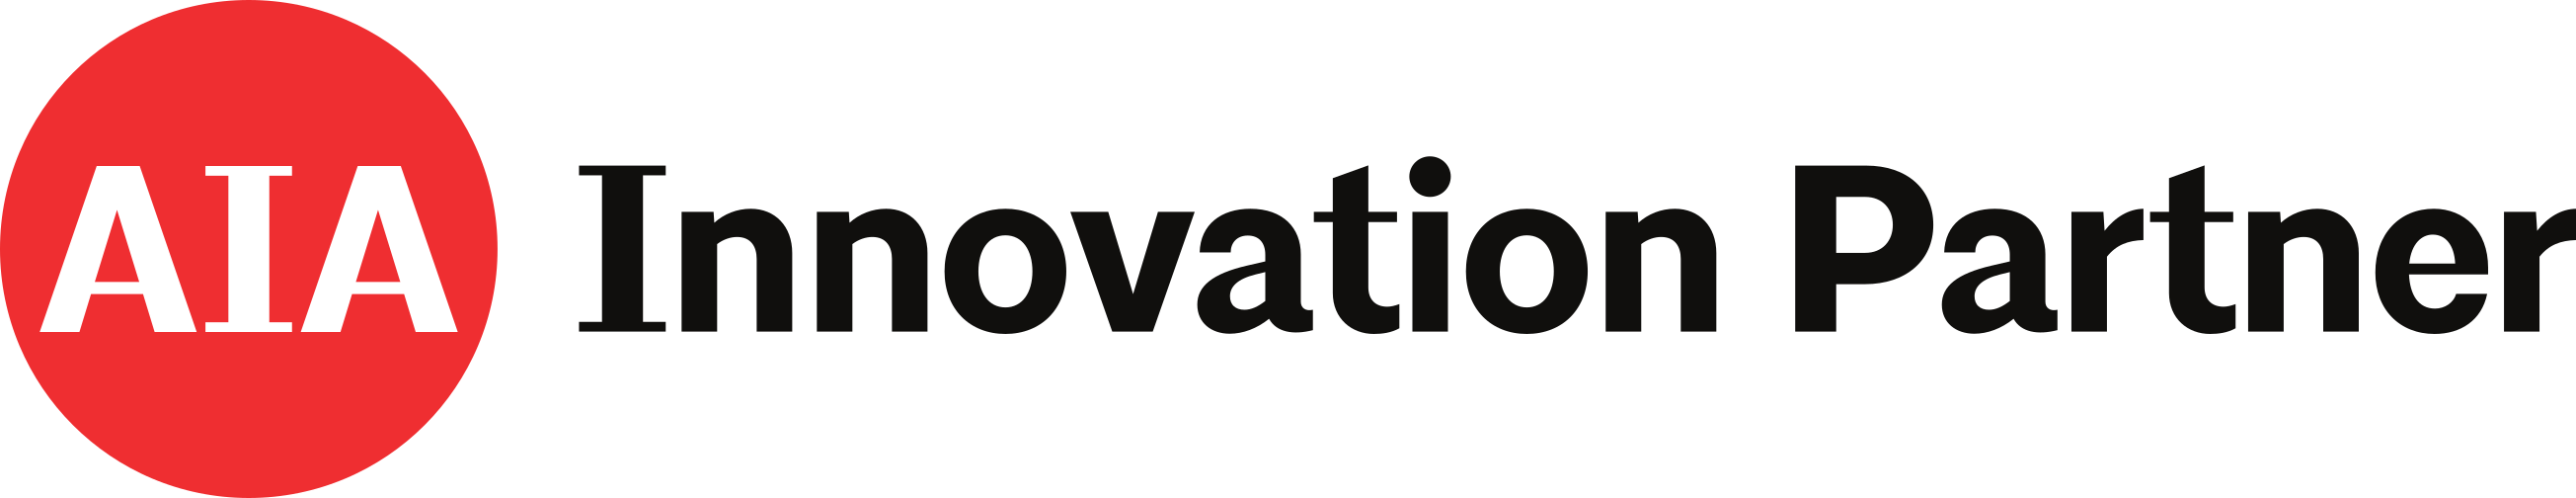 AIA Innovation Partner